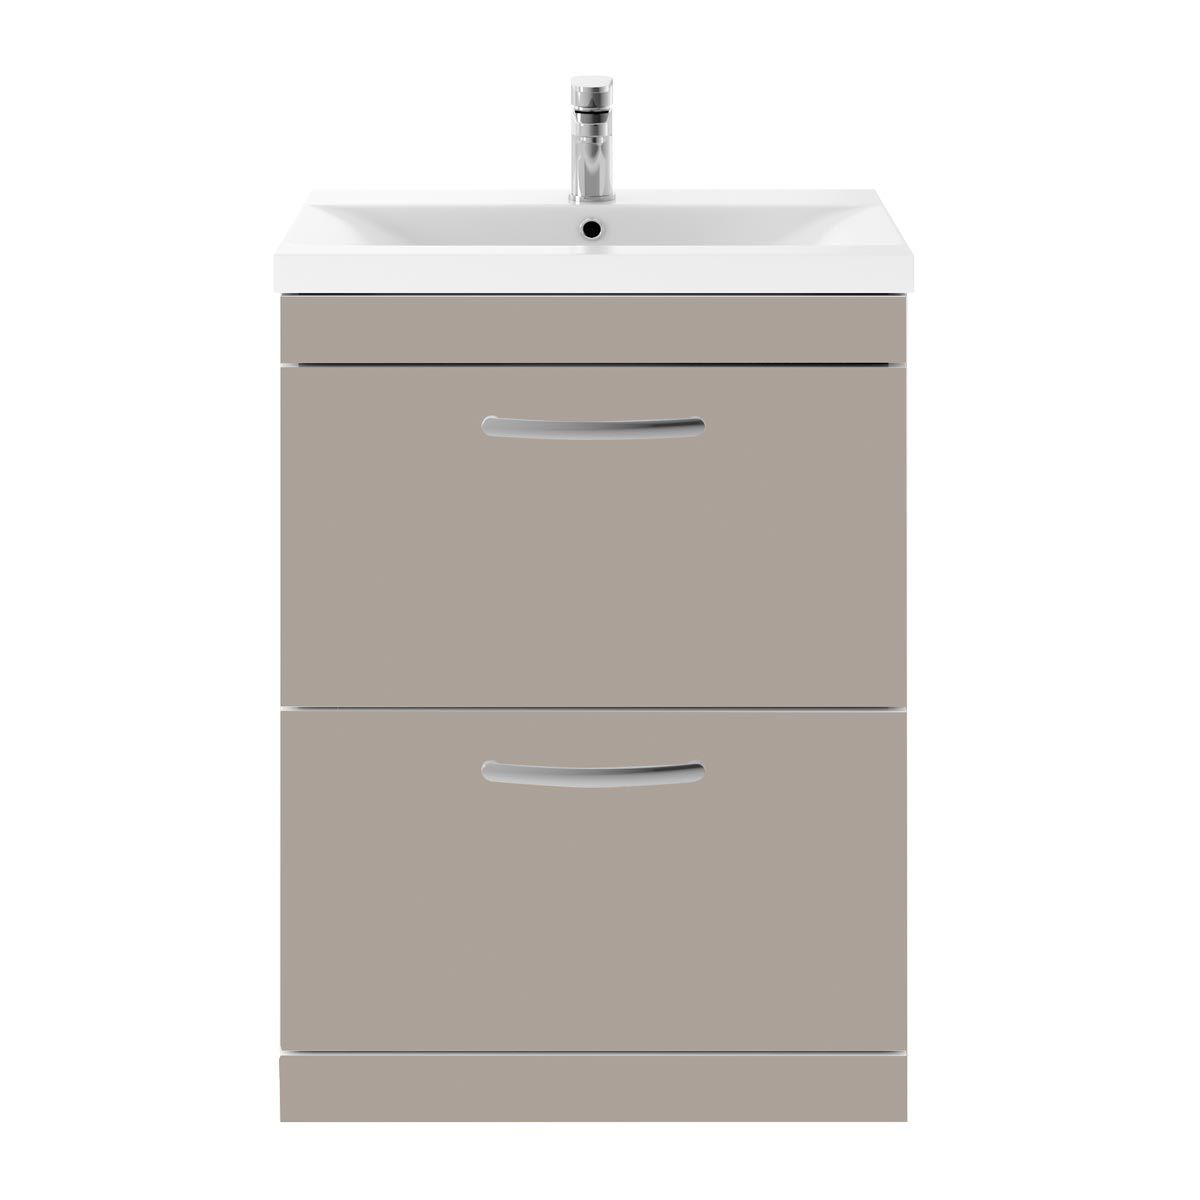 Nuie Athena Stone Grey 2 Drawer Floor Standing Vanity Unit with 40mm Profile Basin 600mm